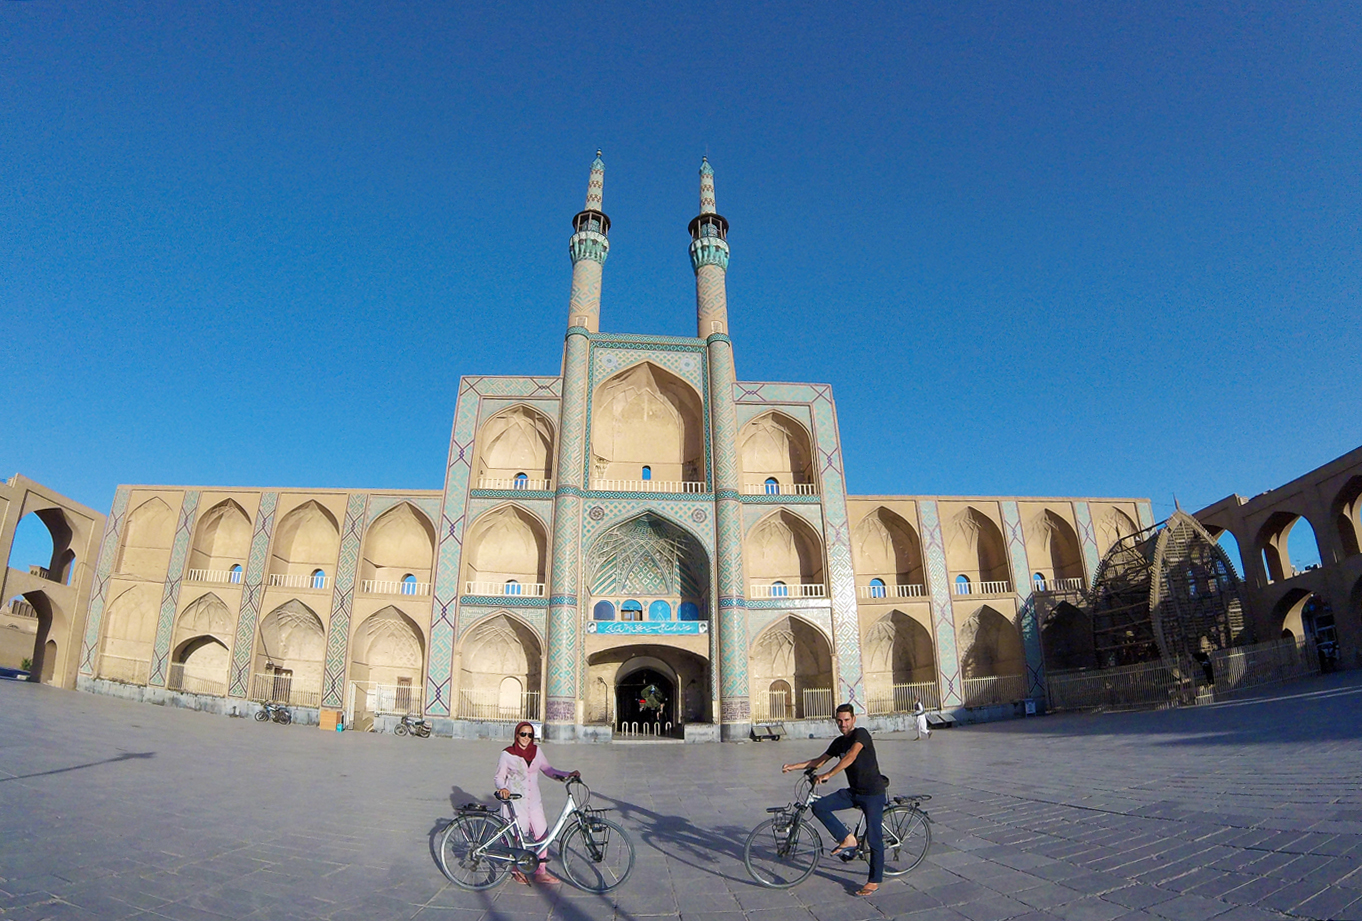 Bike trip, cross Iran by bike, the Amir Chaghmagh complex in Yazd. Cycling travel, biketouring, cycling Iran, the Amir Chakhmaq Complex in Yazd.